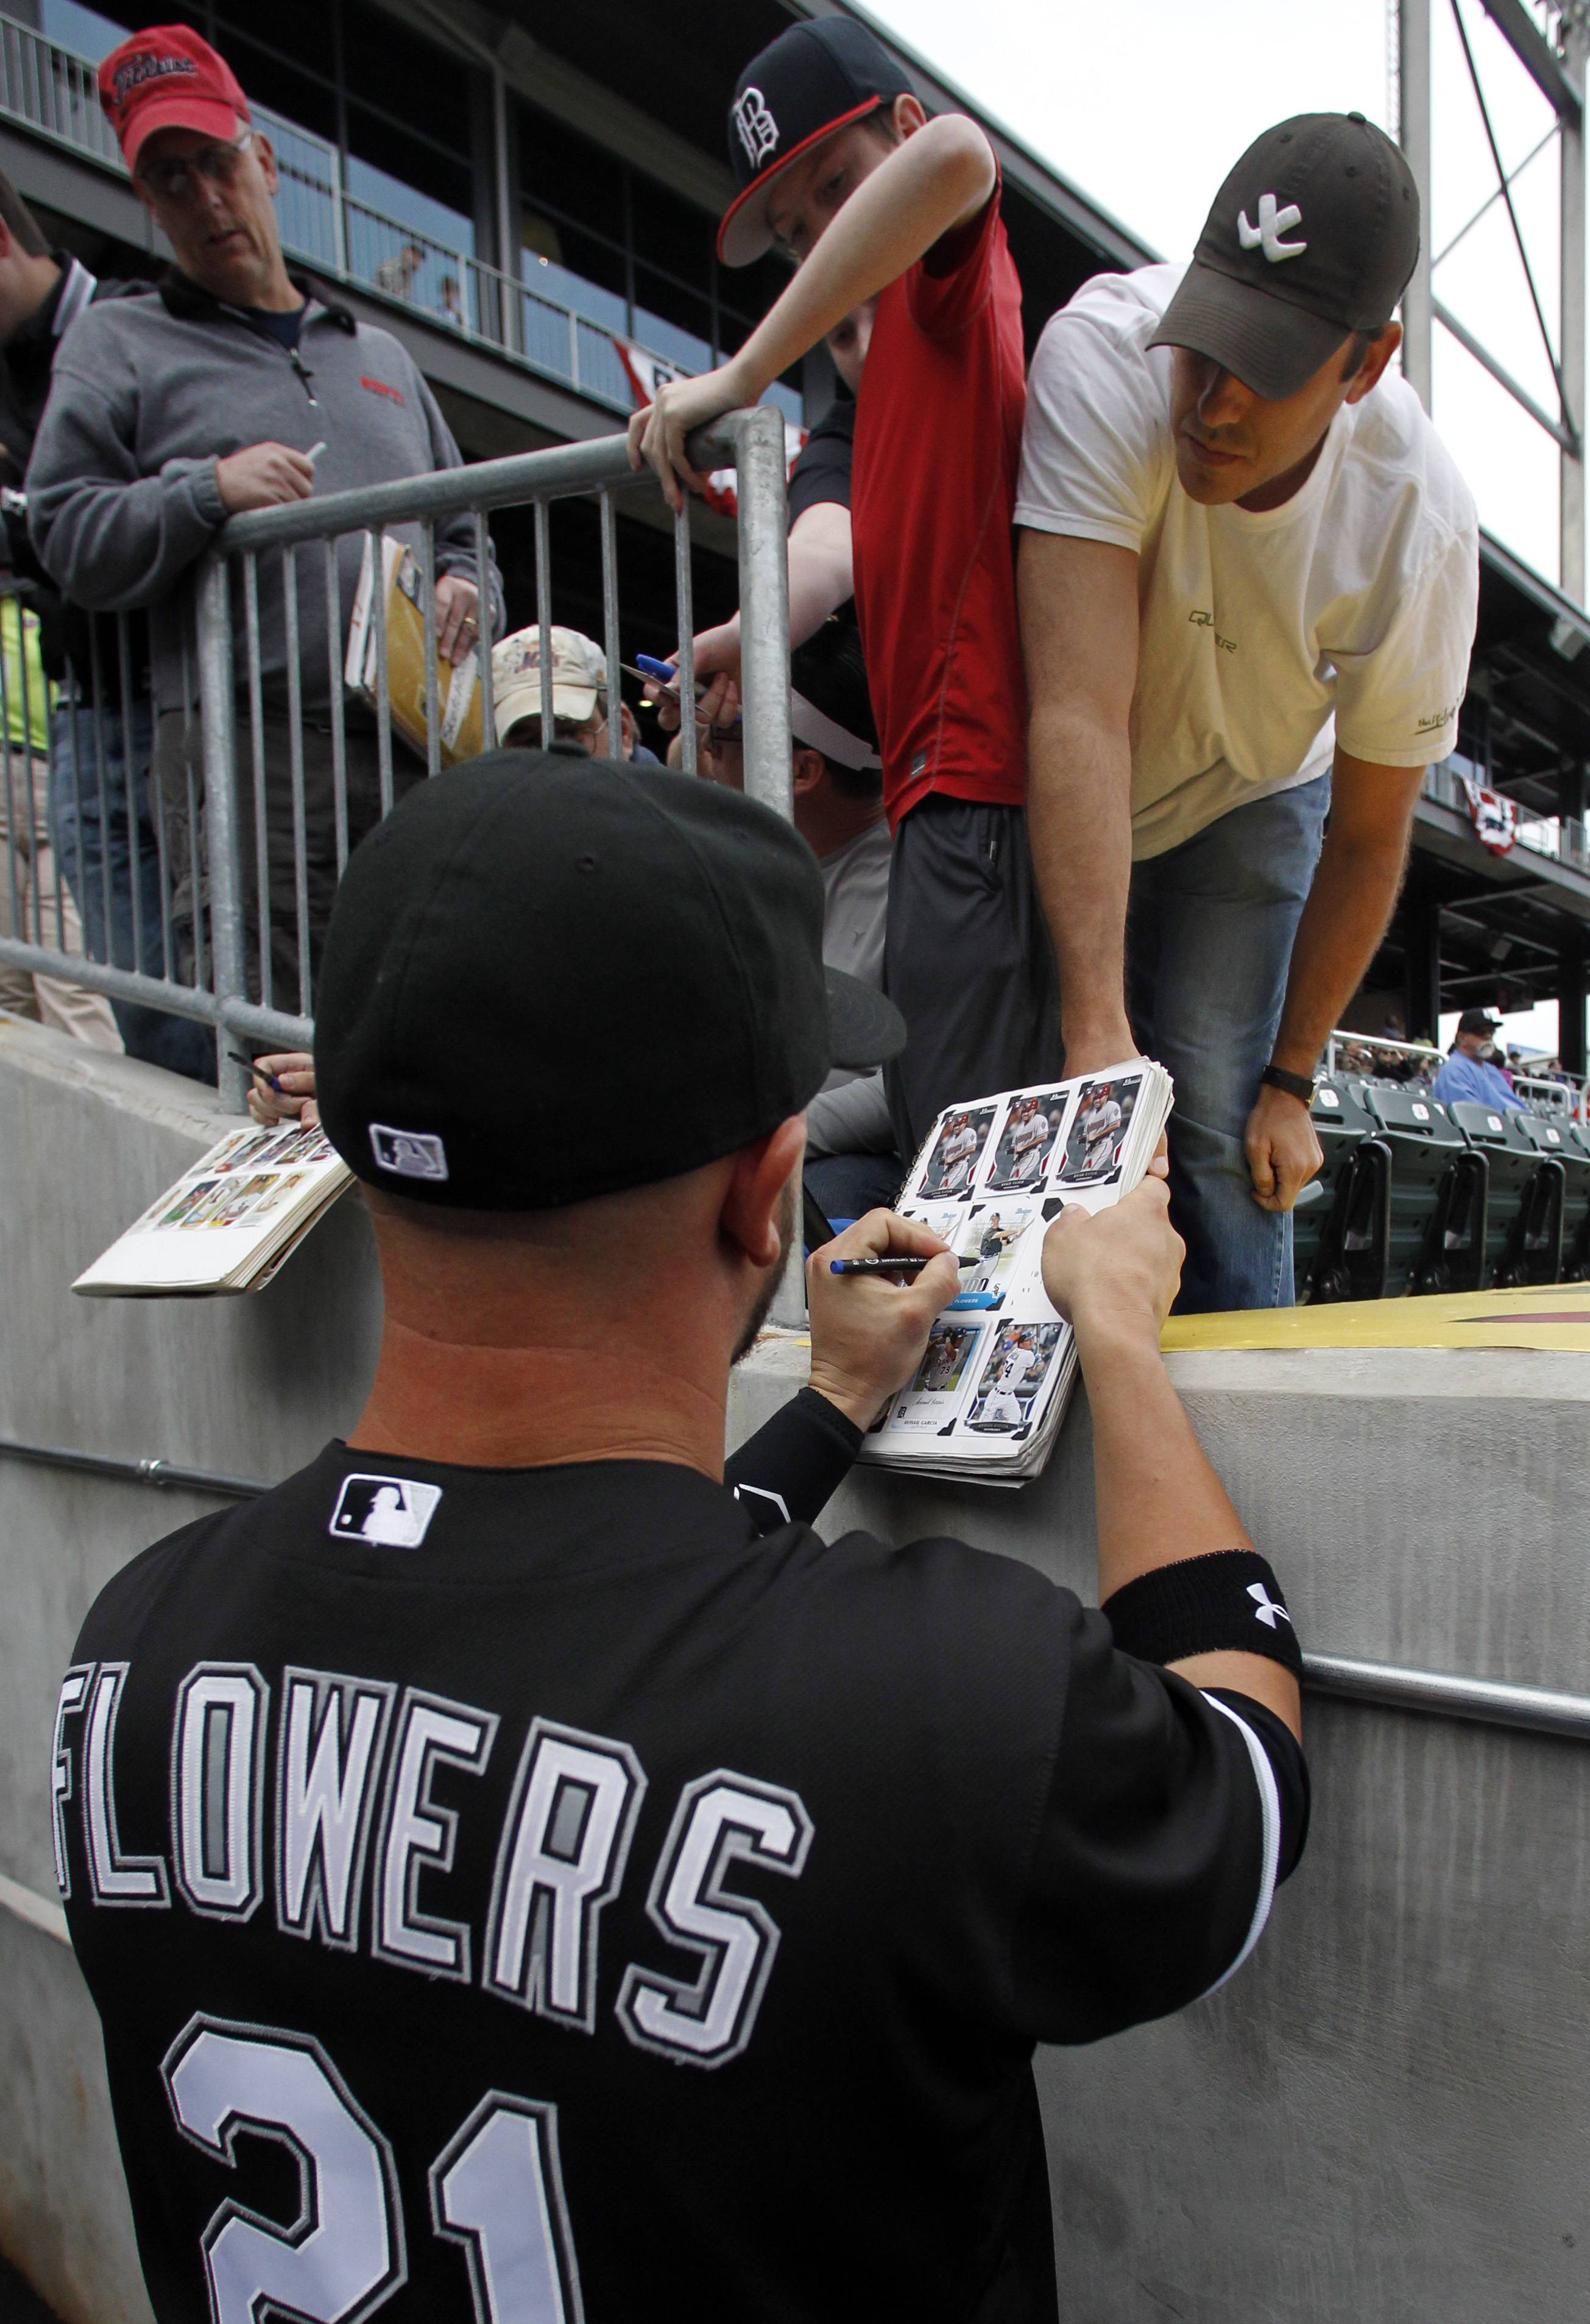 White Sox catcher Tyler Flowers autographs a photo for a fan.